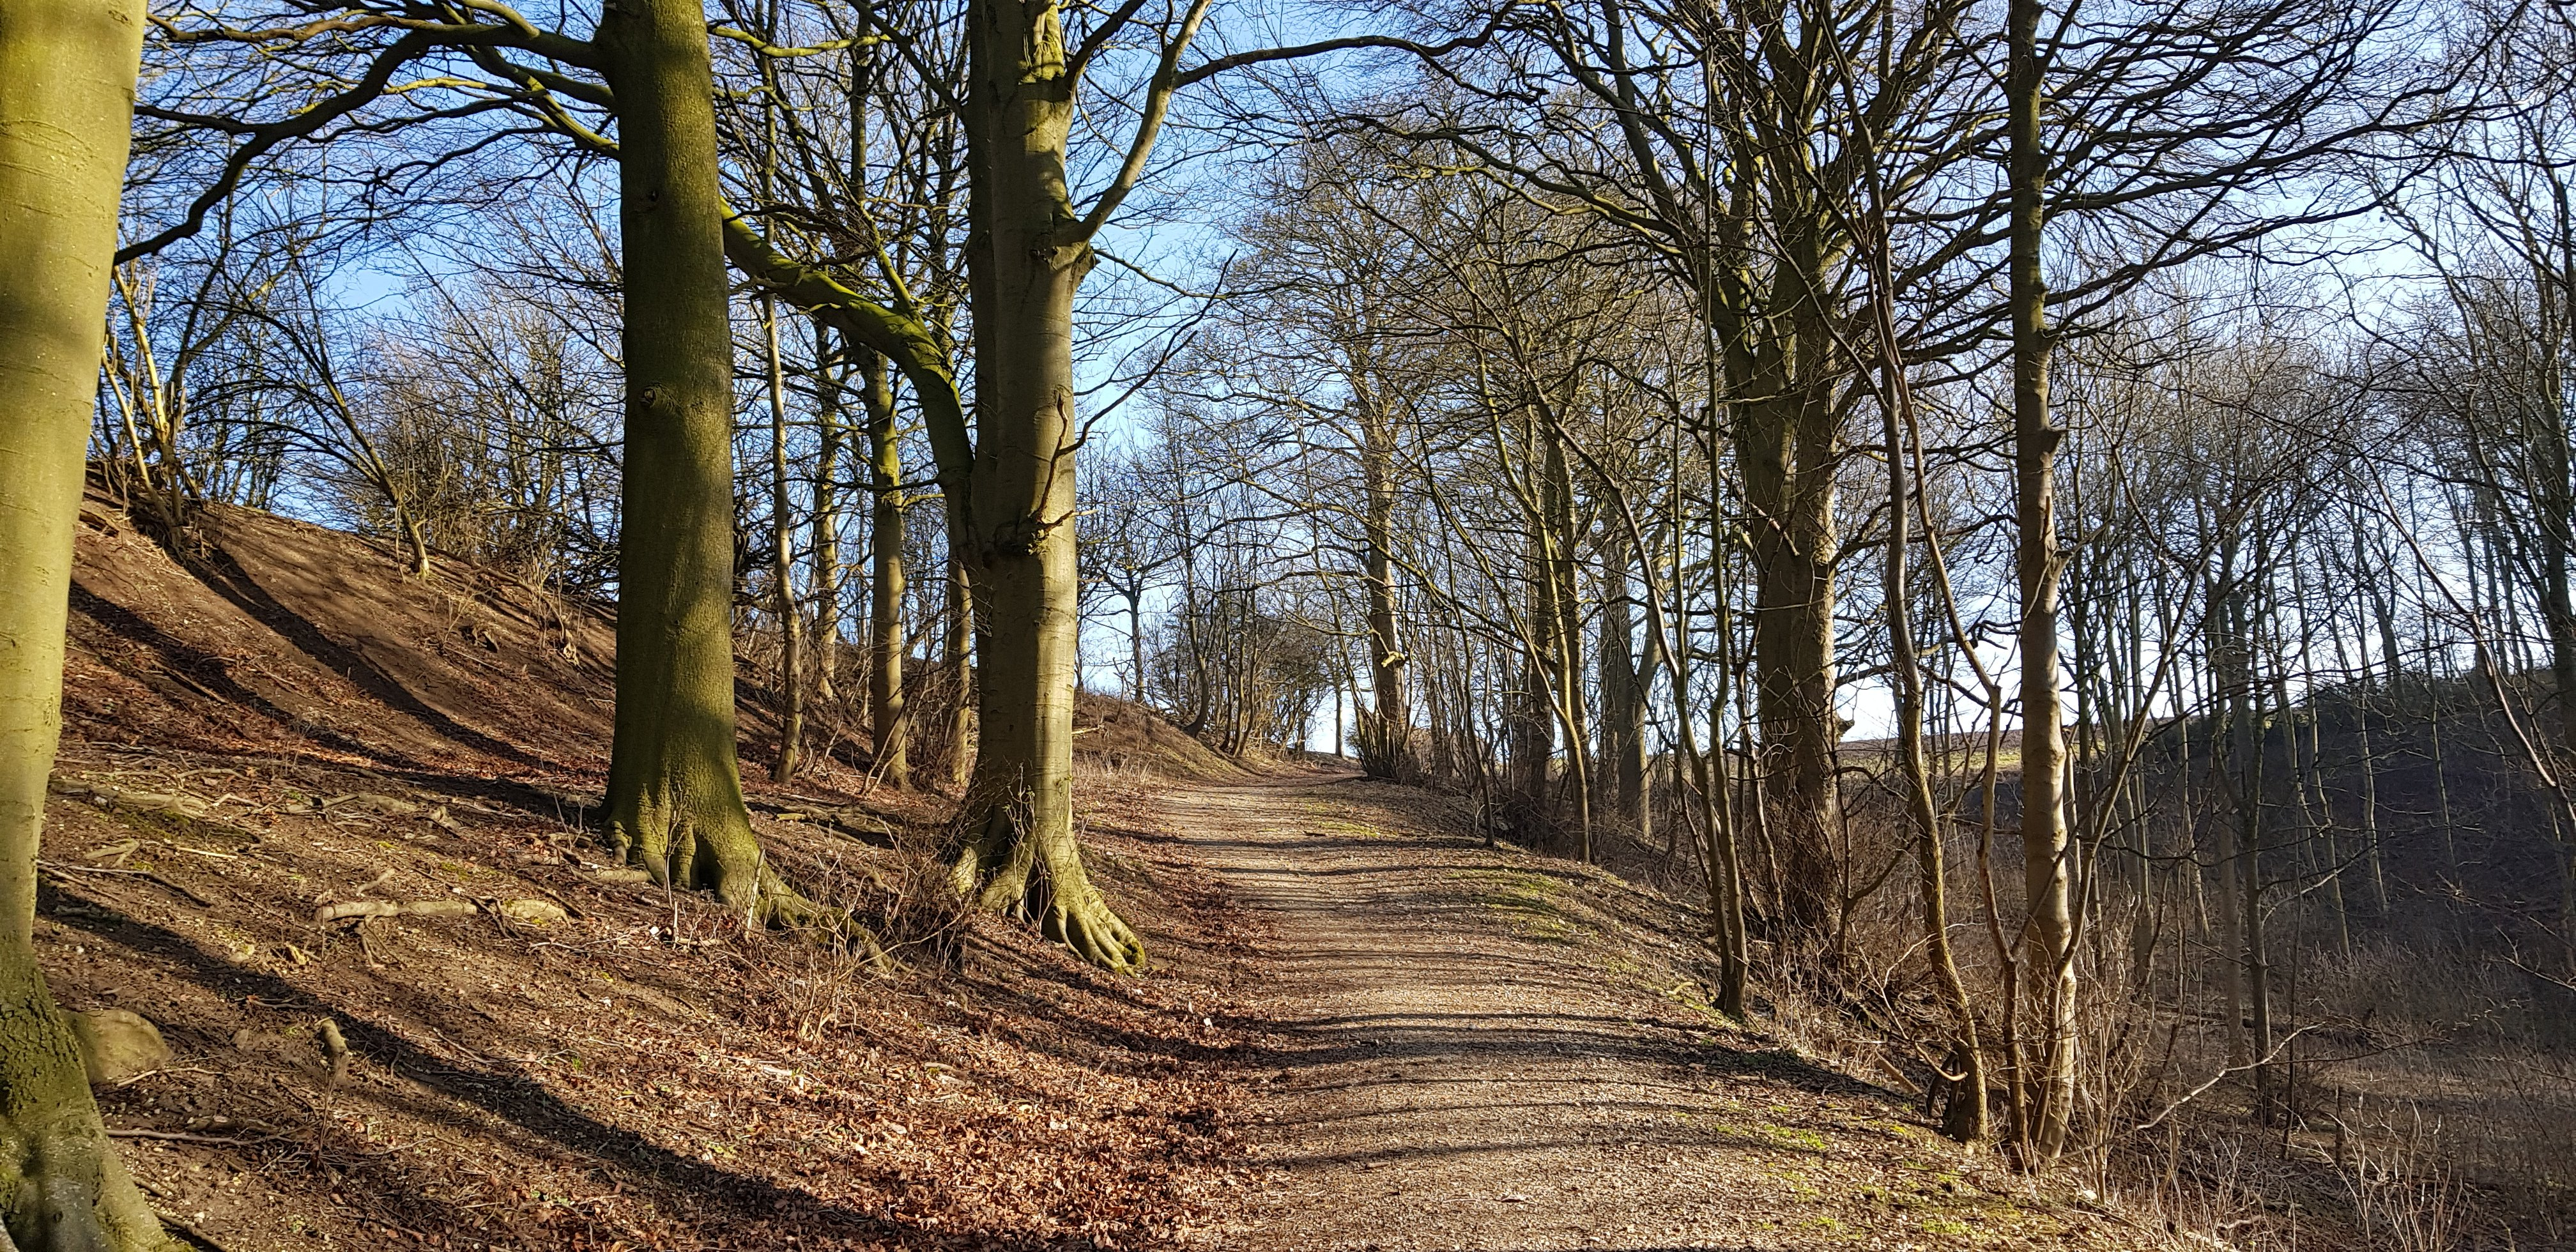 Footpath through a wood near Donington on Bain